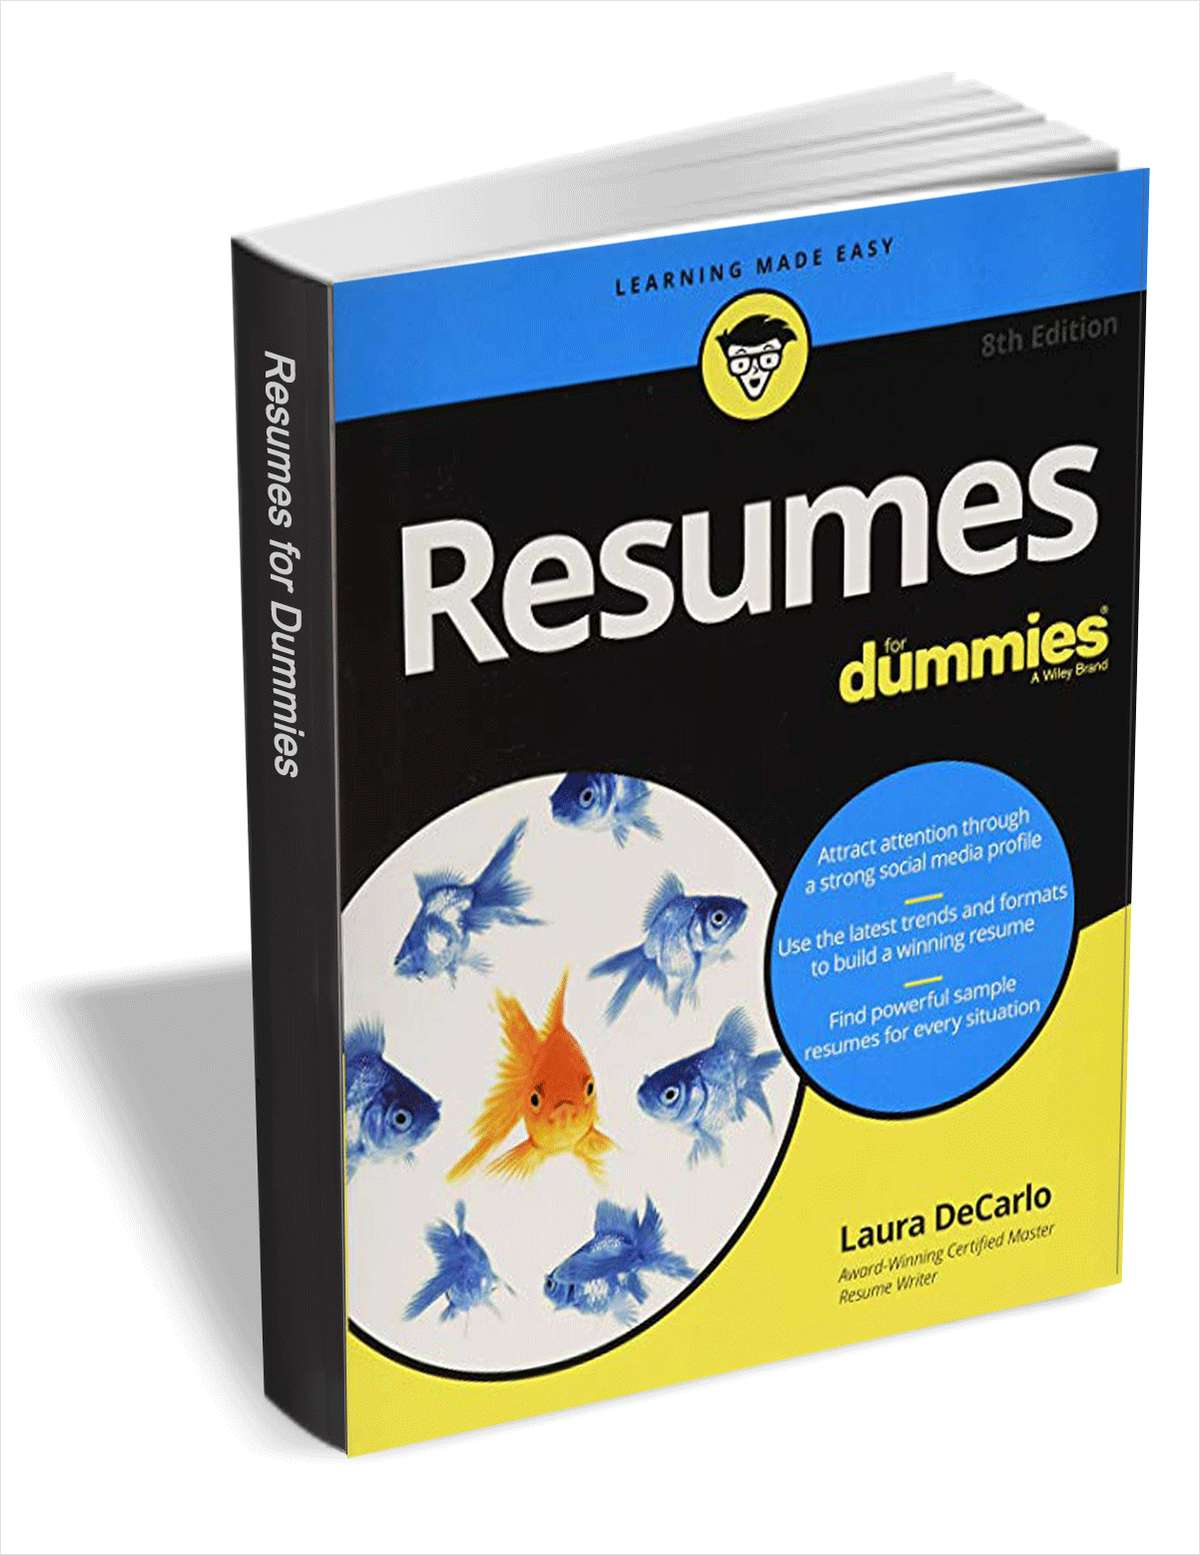 Resumes For Dummies, 8th Edition ($19.99 Value) FREE for a Limited Time